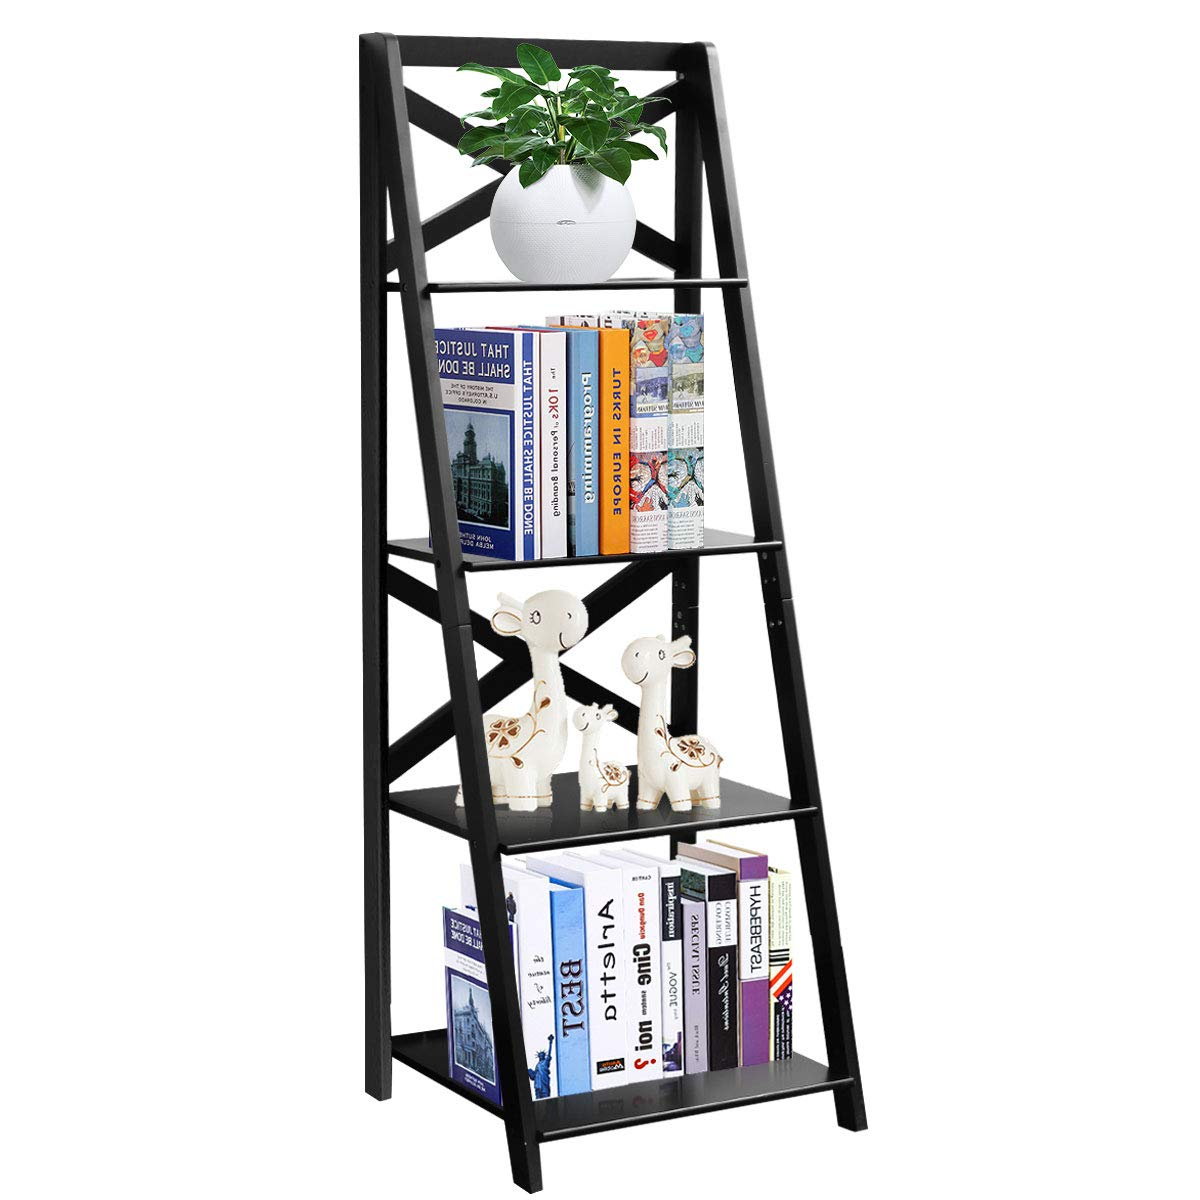 Tangkula 4-Tier Ladder Shelf Bookcase Leaning Free Standing Wooden Frame Decor Bookshelf Storage Flower Shelf Plant Display Shelf for Home Office